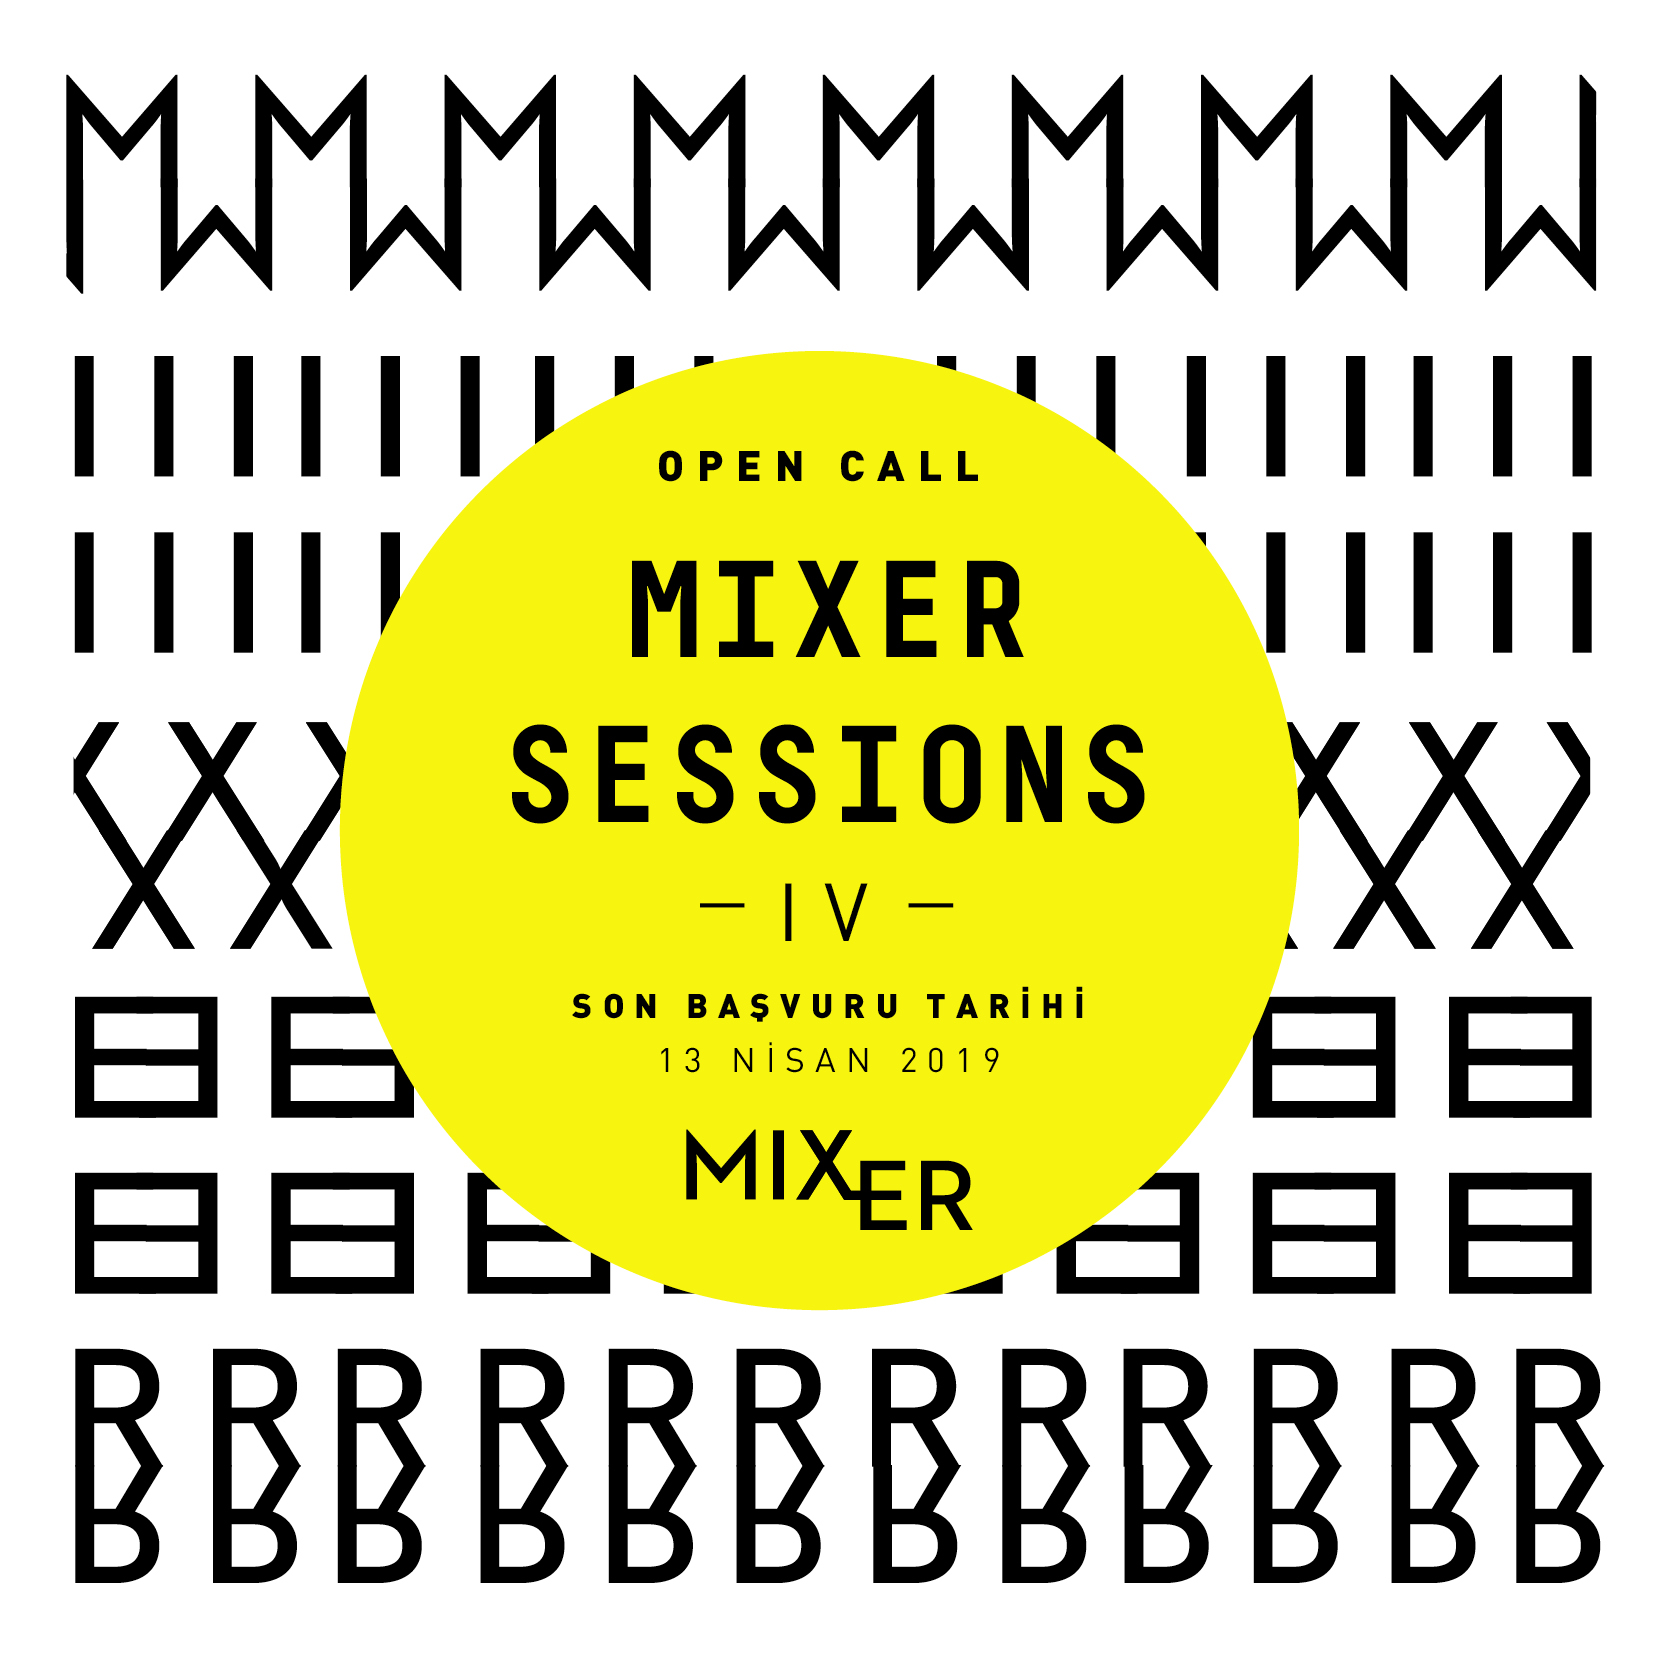 Open Call: Mixer Sessions IV